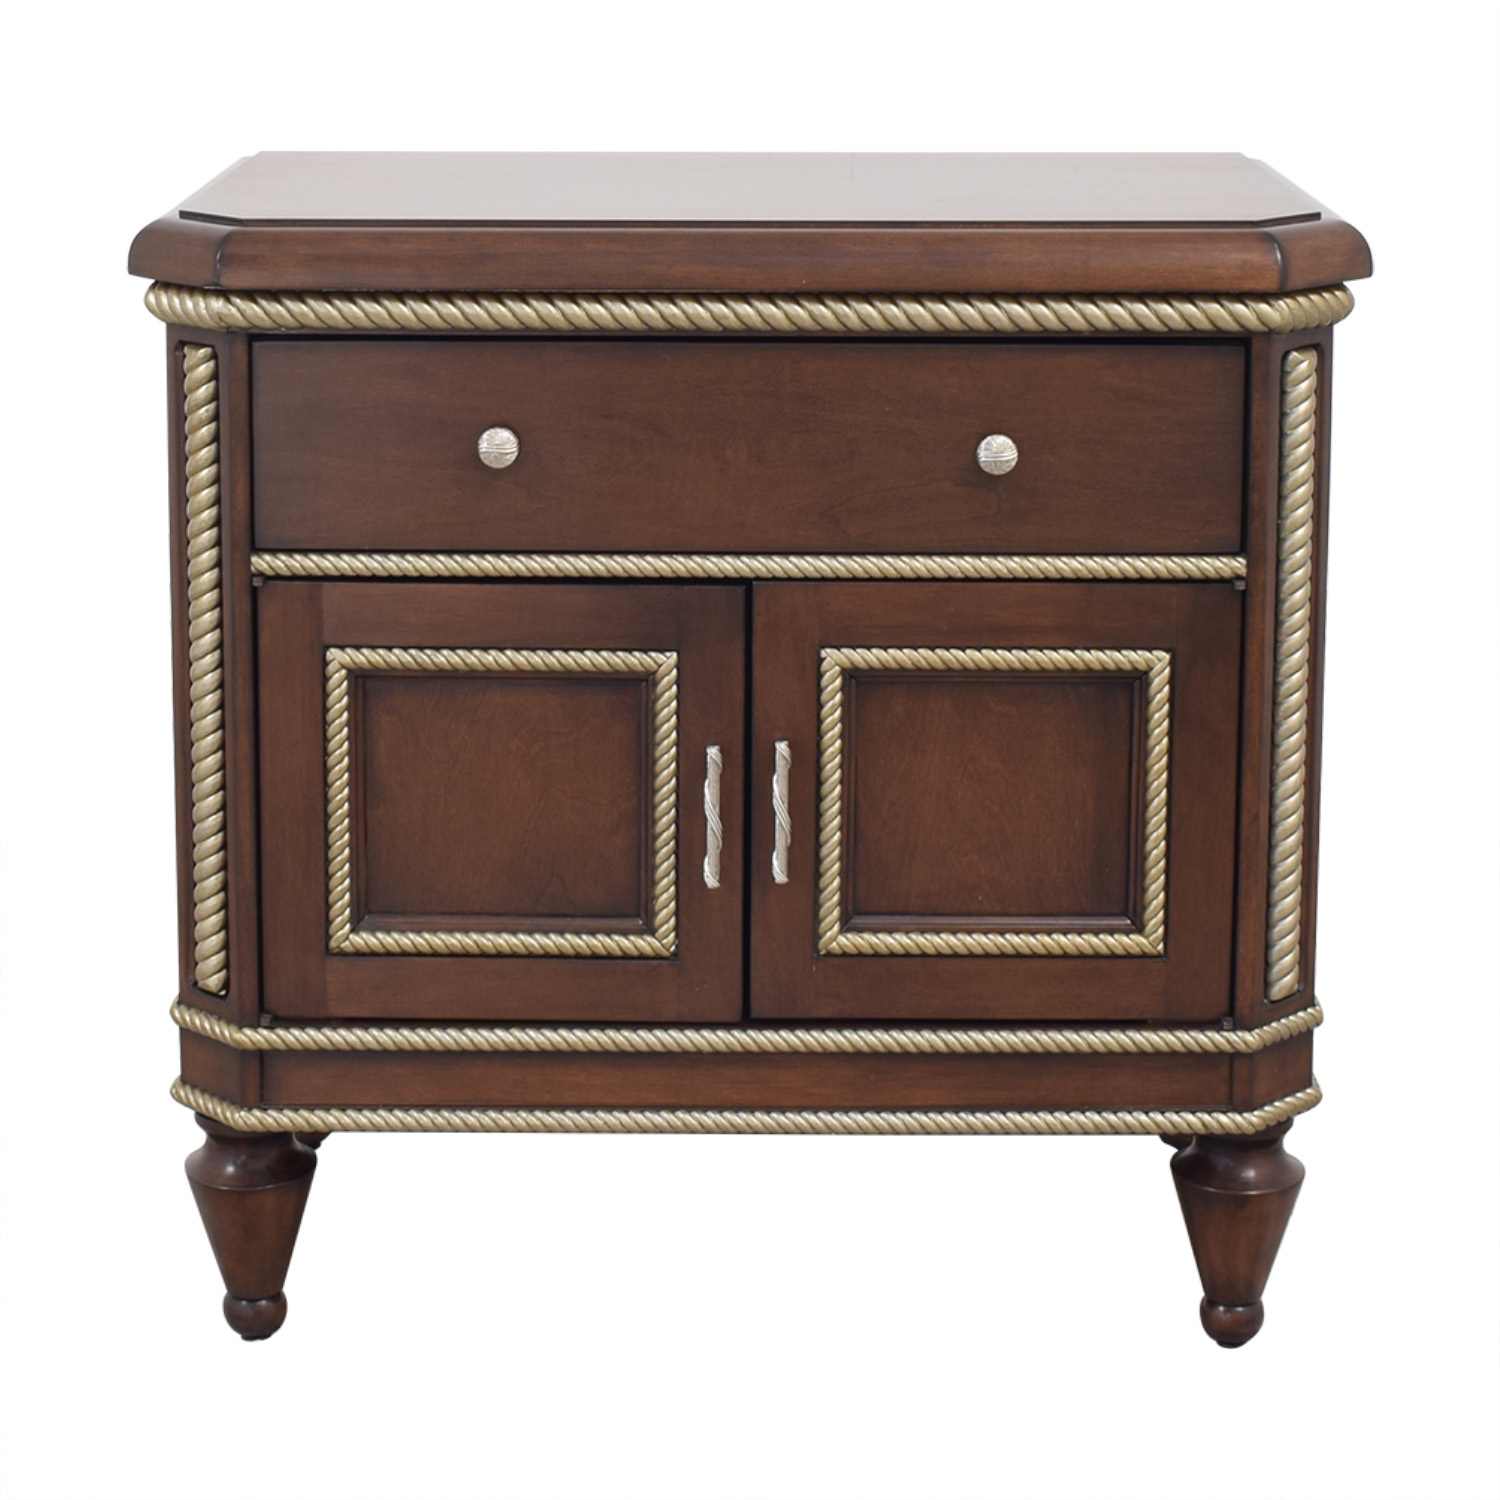 buy Swaim Swaim Furniture End Table Cabinet online